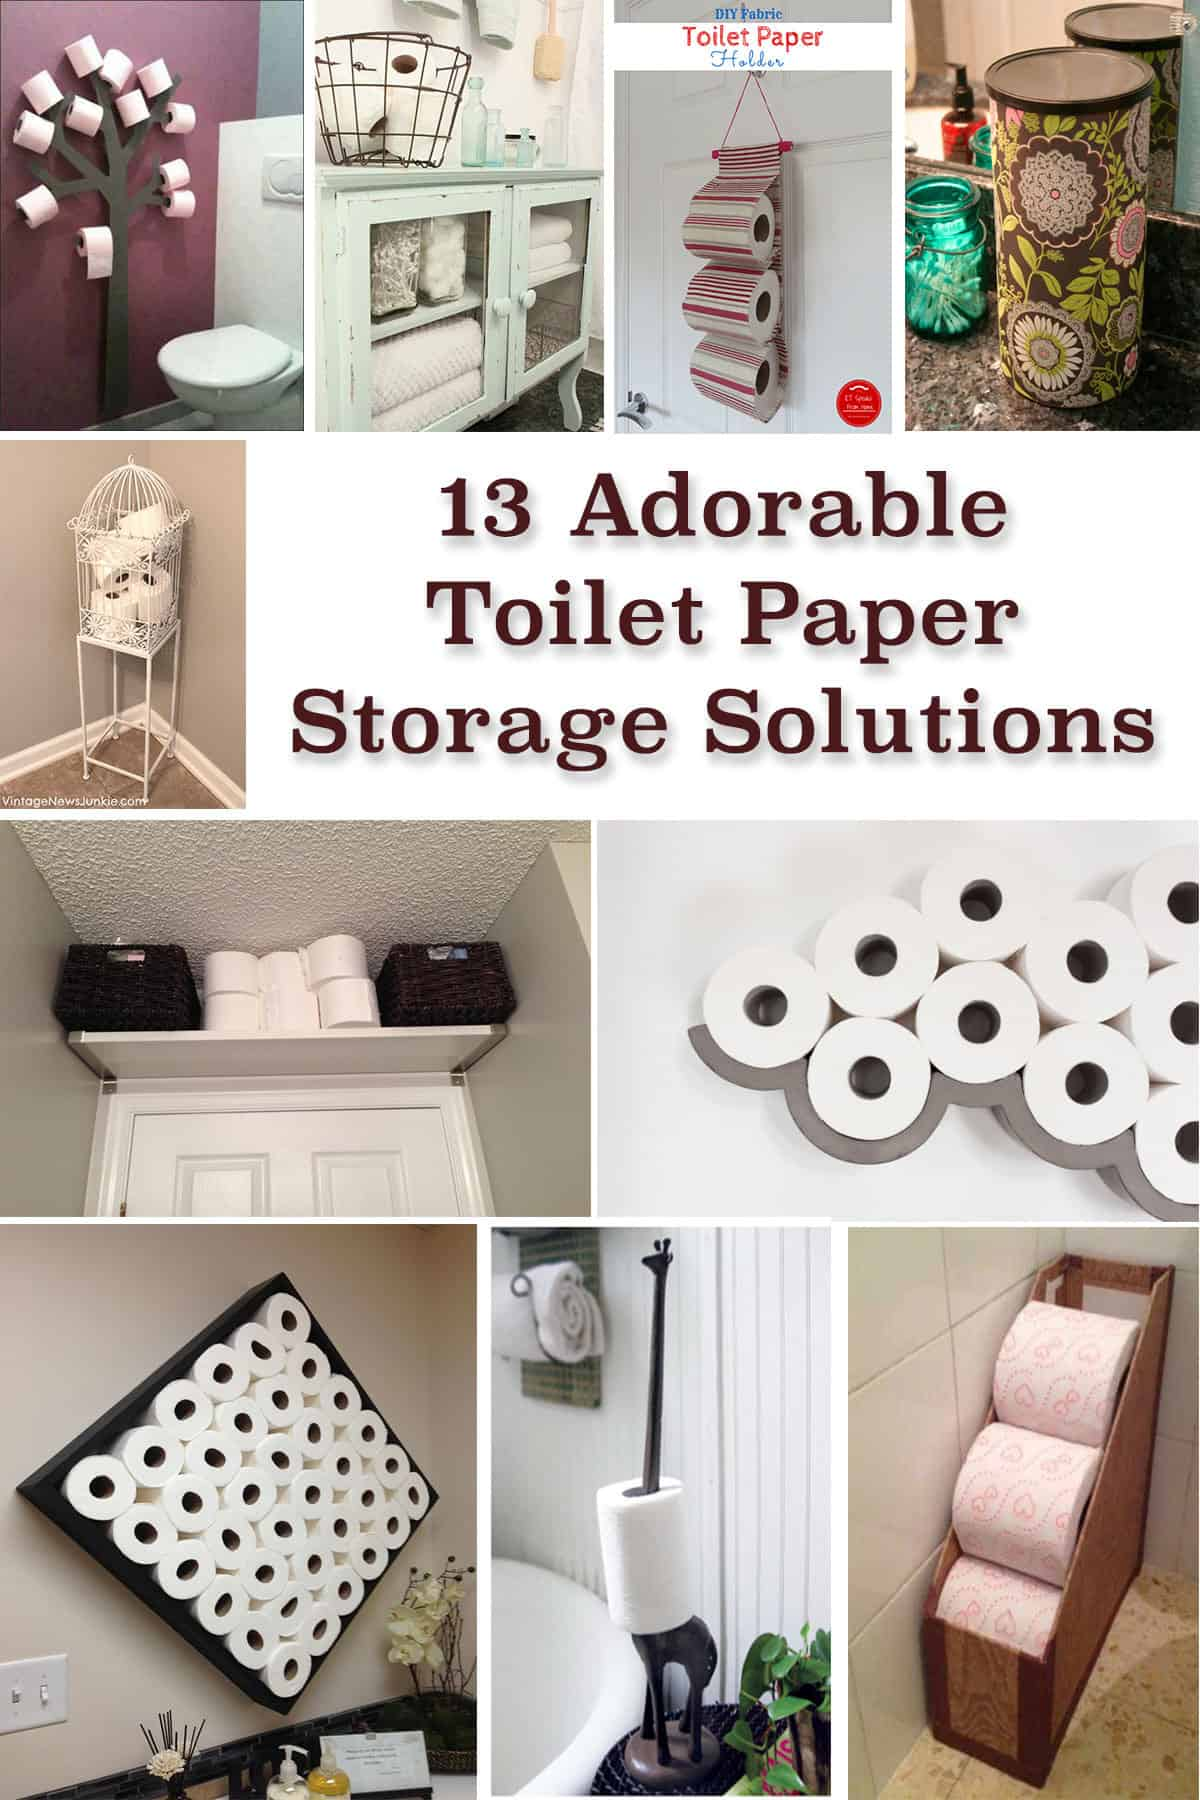 Covered Toilet Paper Storage 13 Adorable Toilet Paper Storage Solutions Knockoffdecor